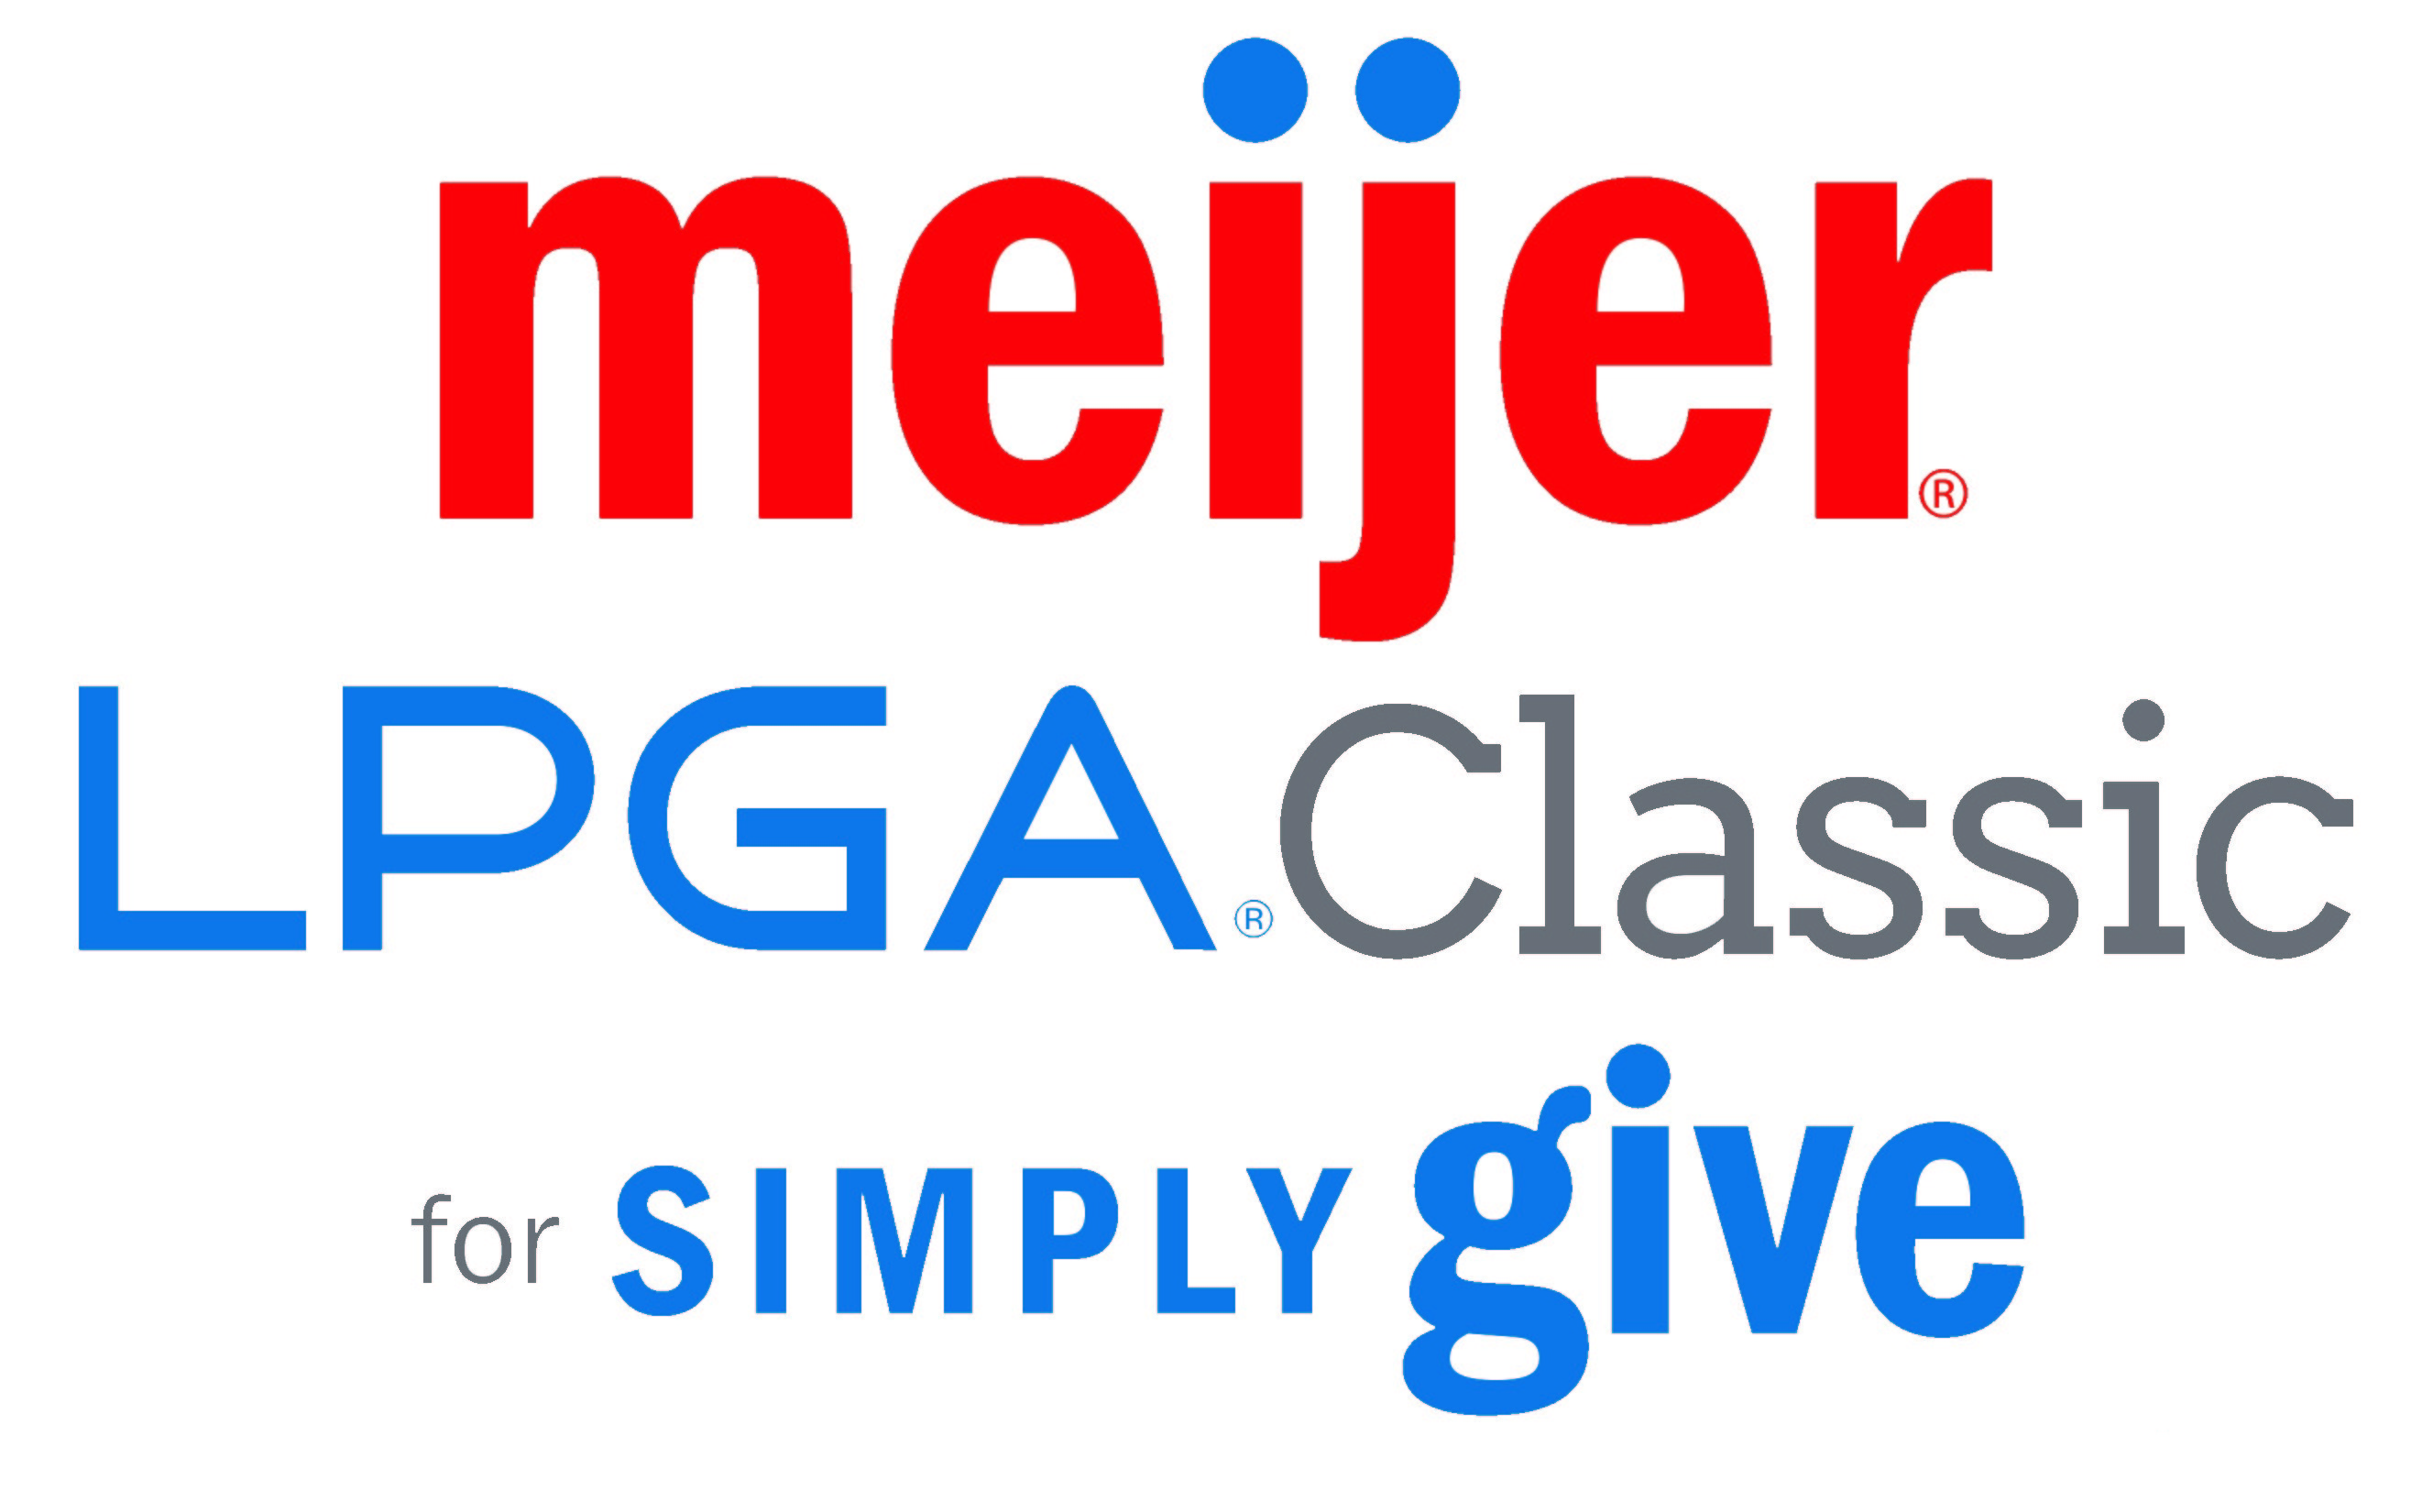 Meijer LPGA Classic for Simply Give Announces 2019 Event Dates